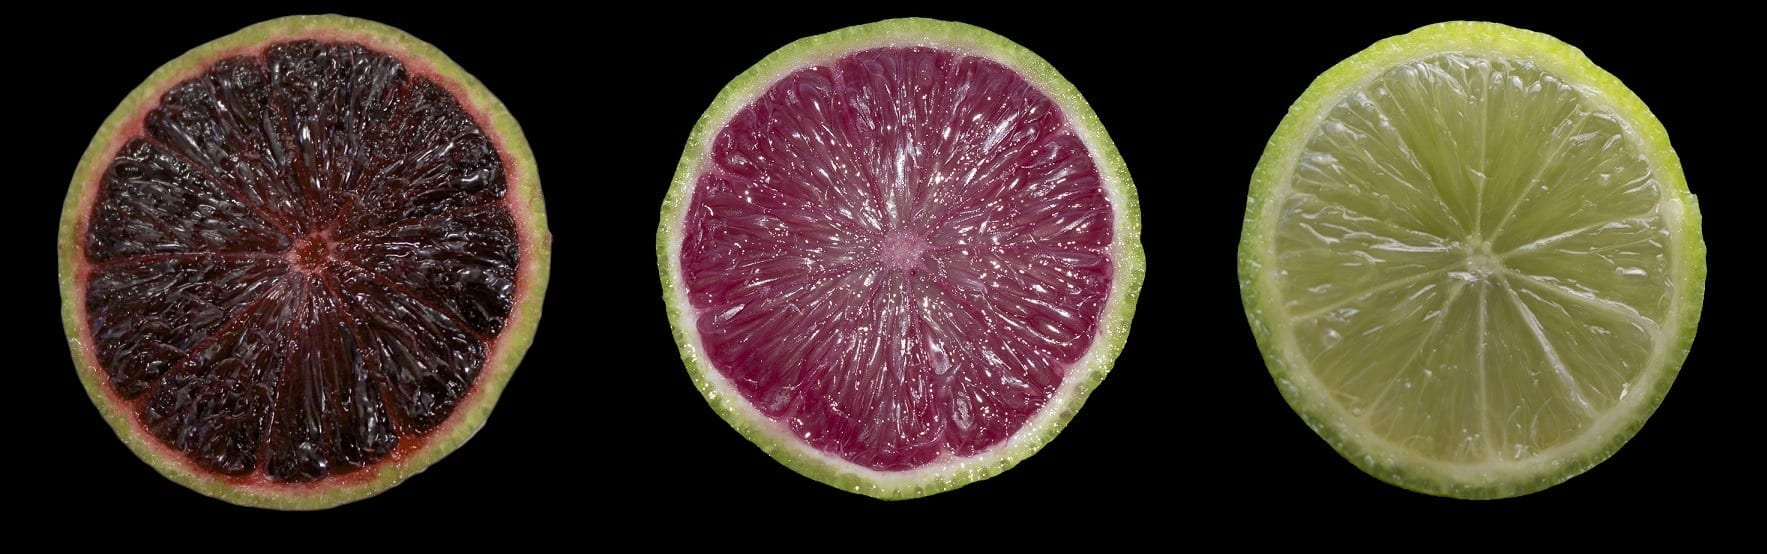 Purple limes and blood oranges with anthocyaninscould be next for Florida citrus